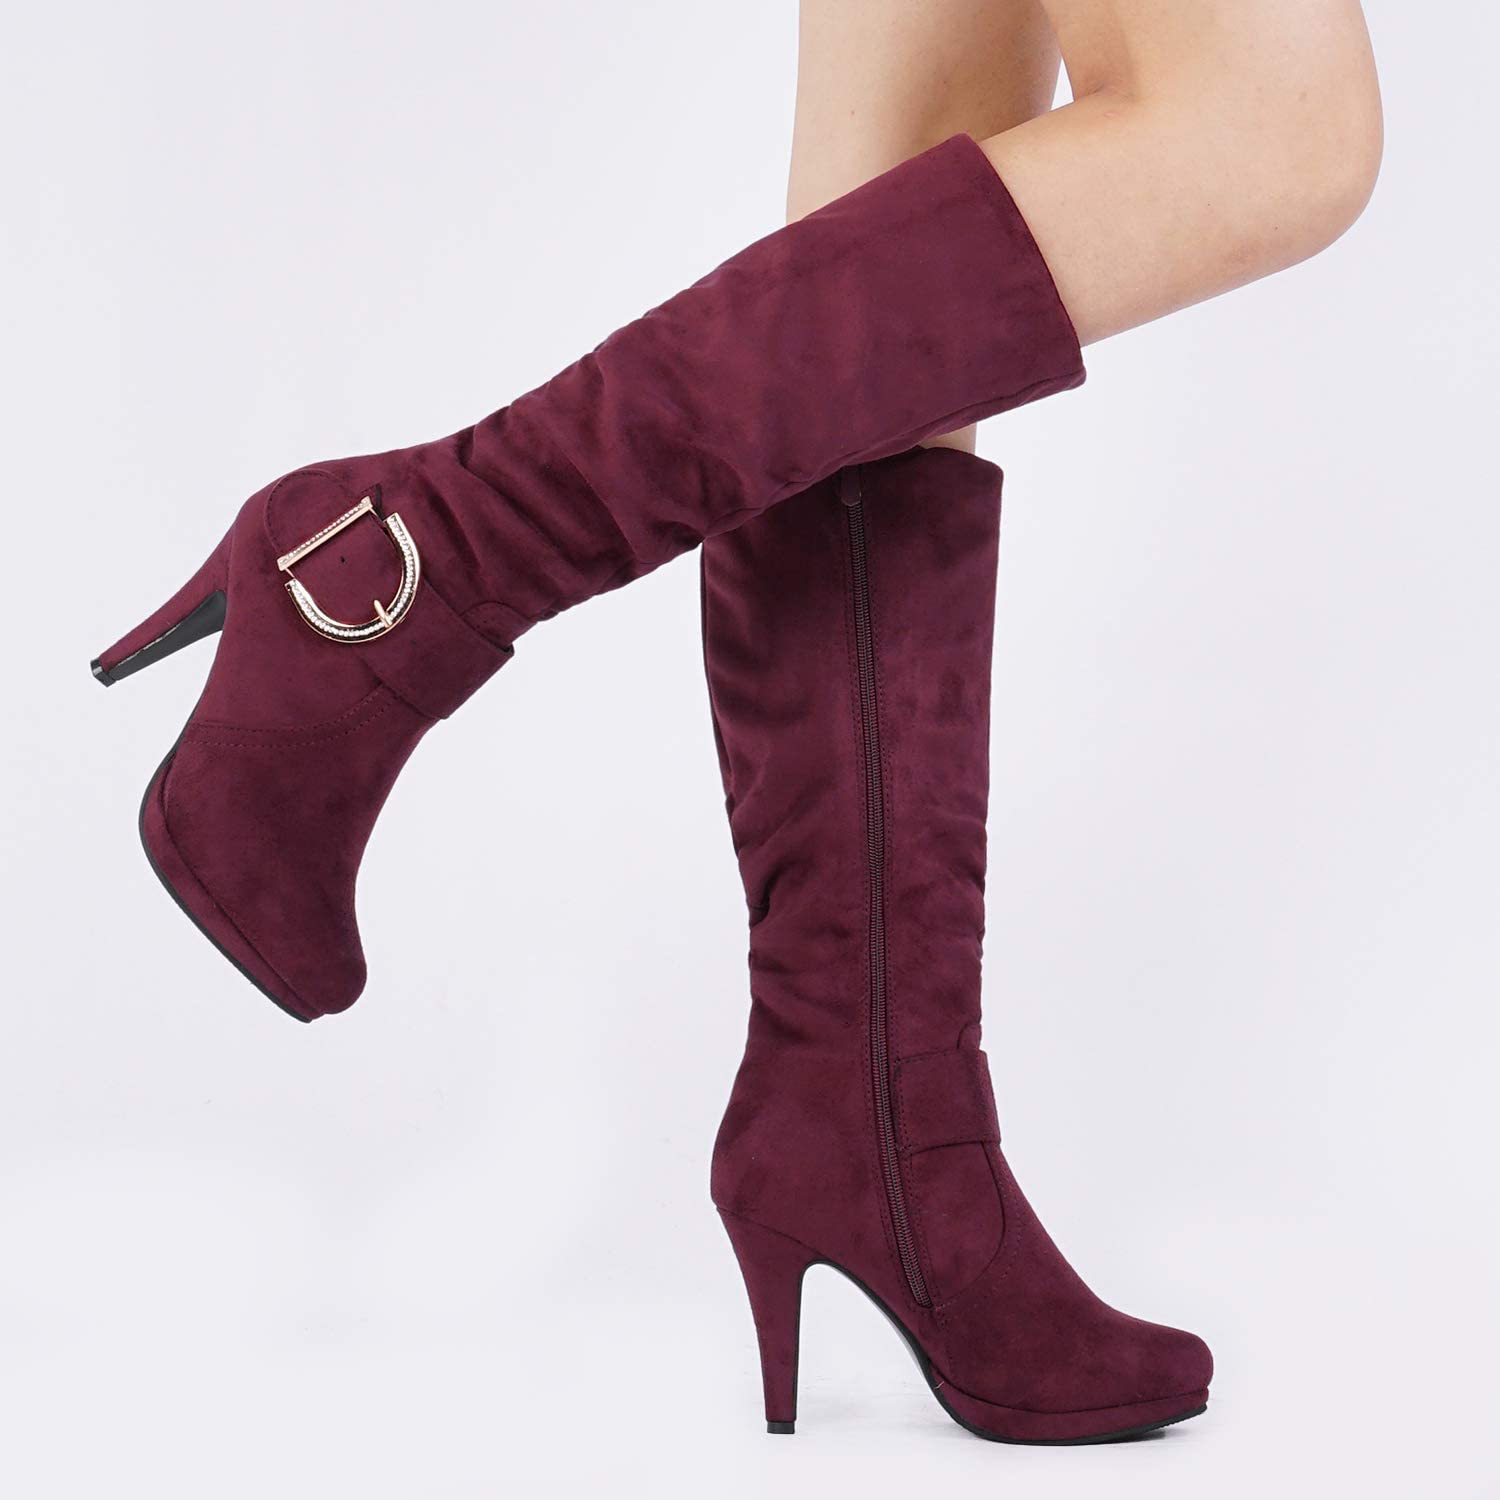 DREAM PAIRS Womens Knee High High Heel Winter Fashion Boots